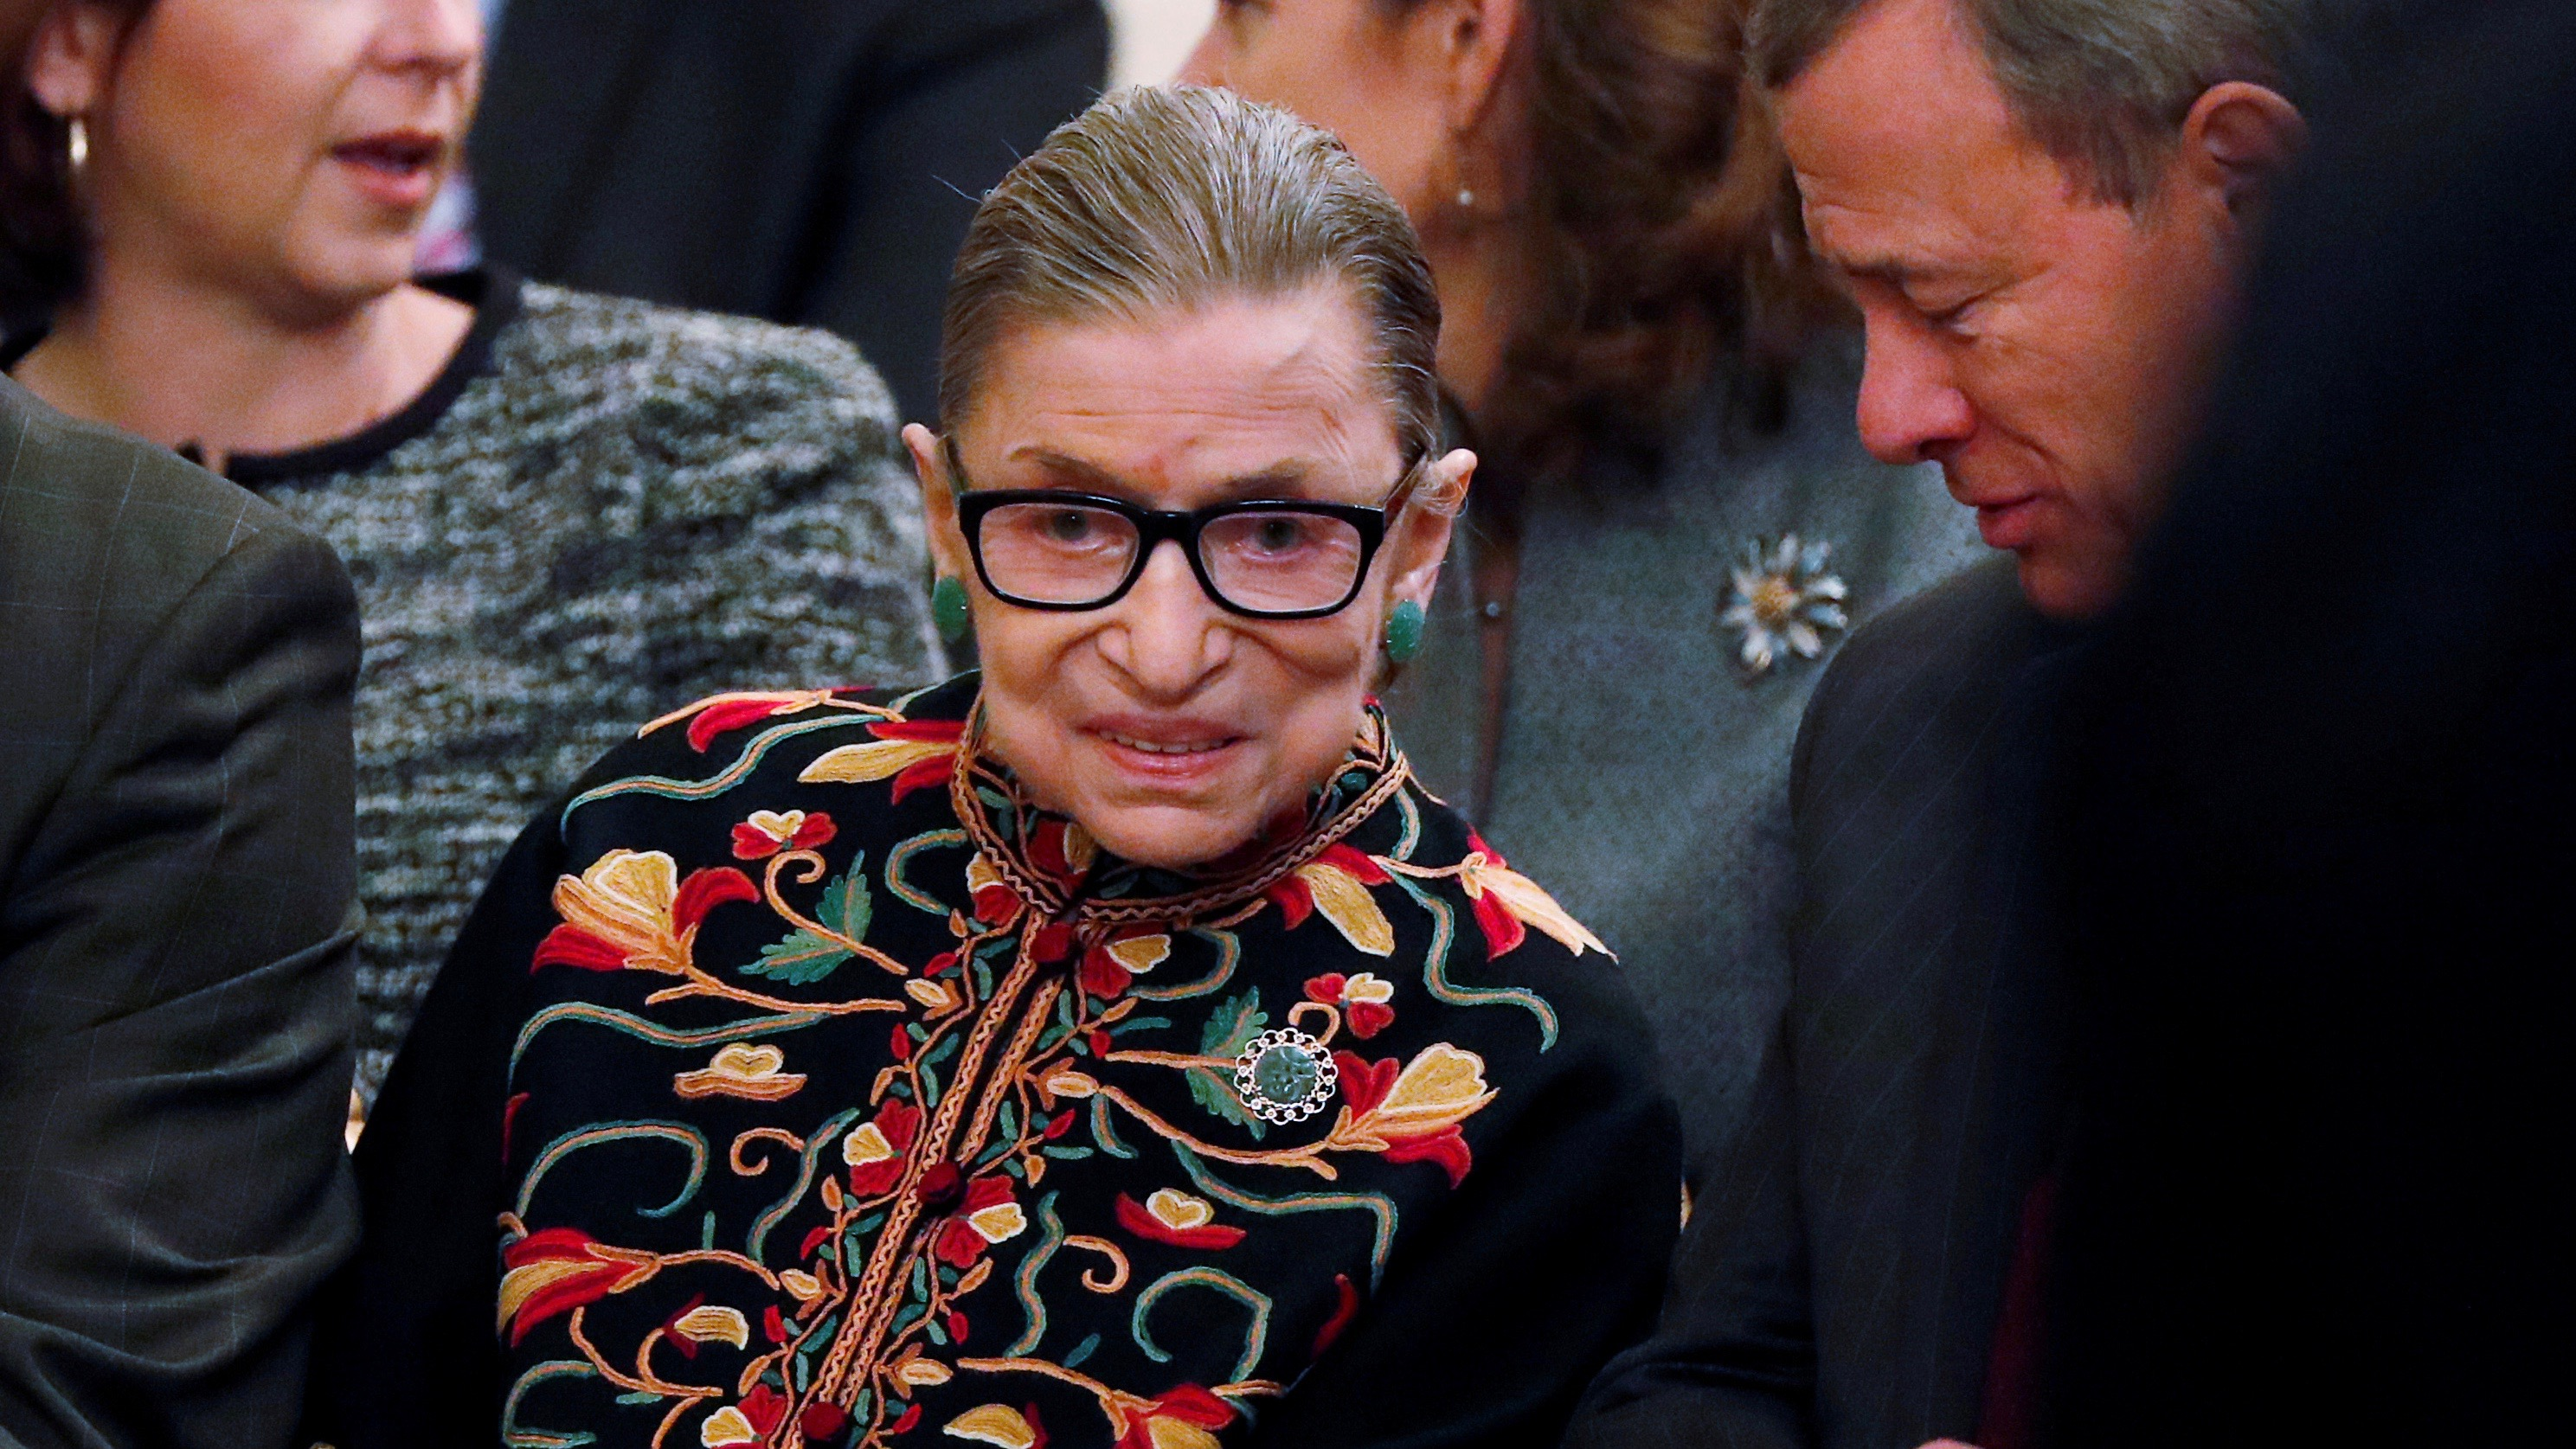 It's probably best not to underestimate the strength of Ruth Bader Ginsburg.